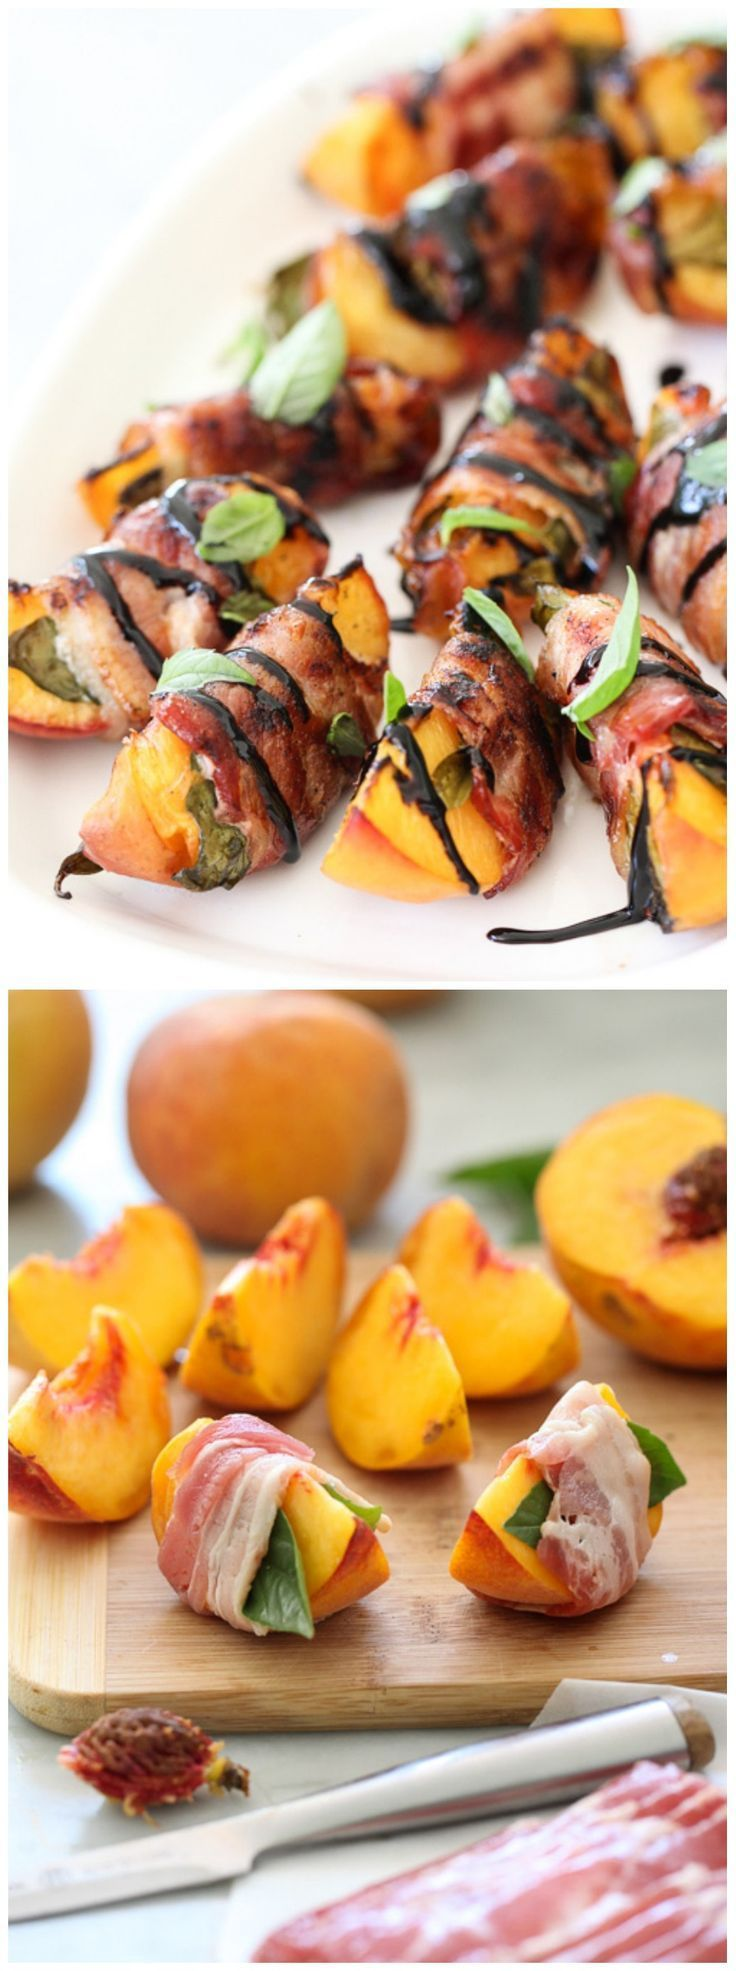 Bacon Wrapped Grilled Peaches with Balsamic Glaze - for the meat eaters!